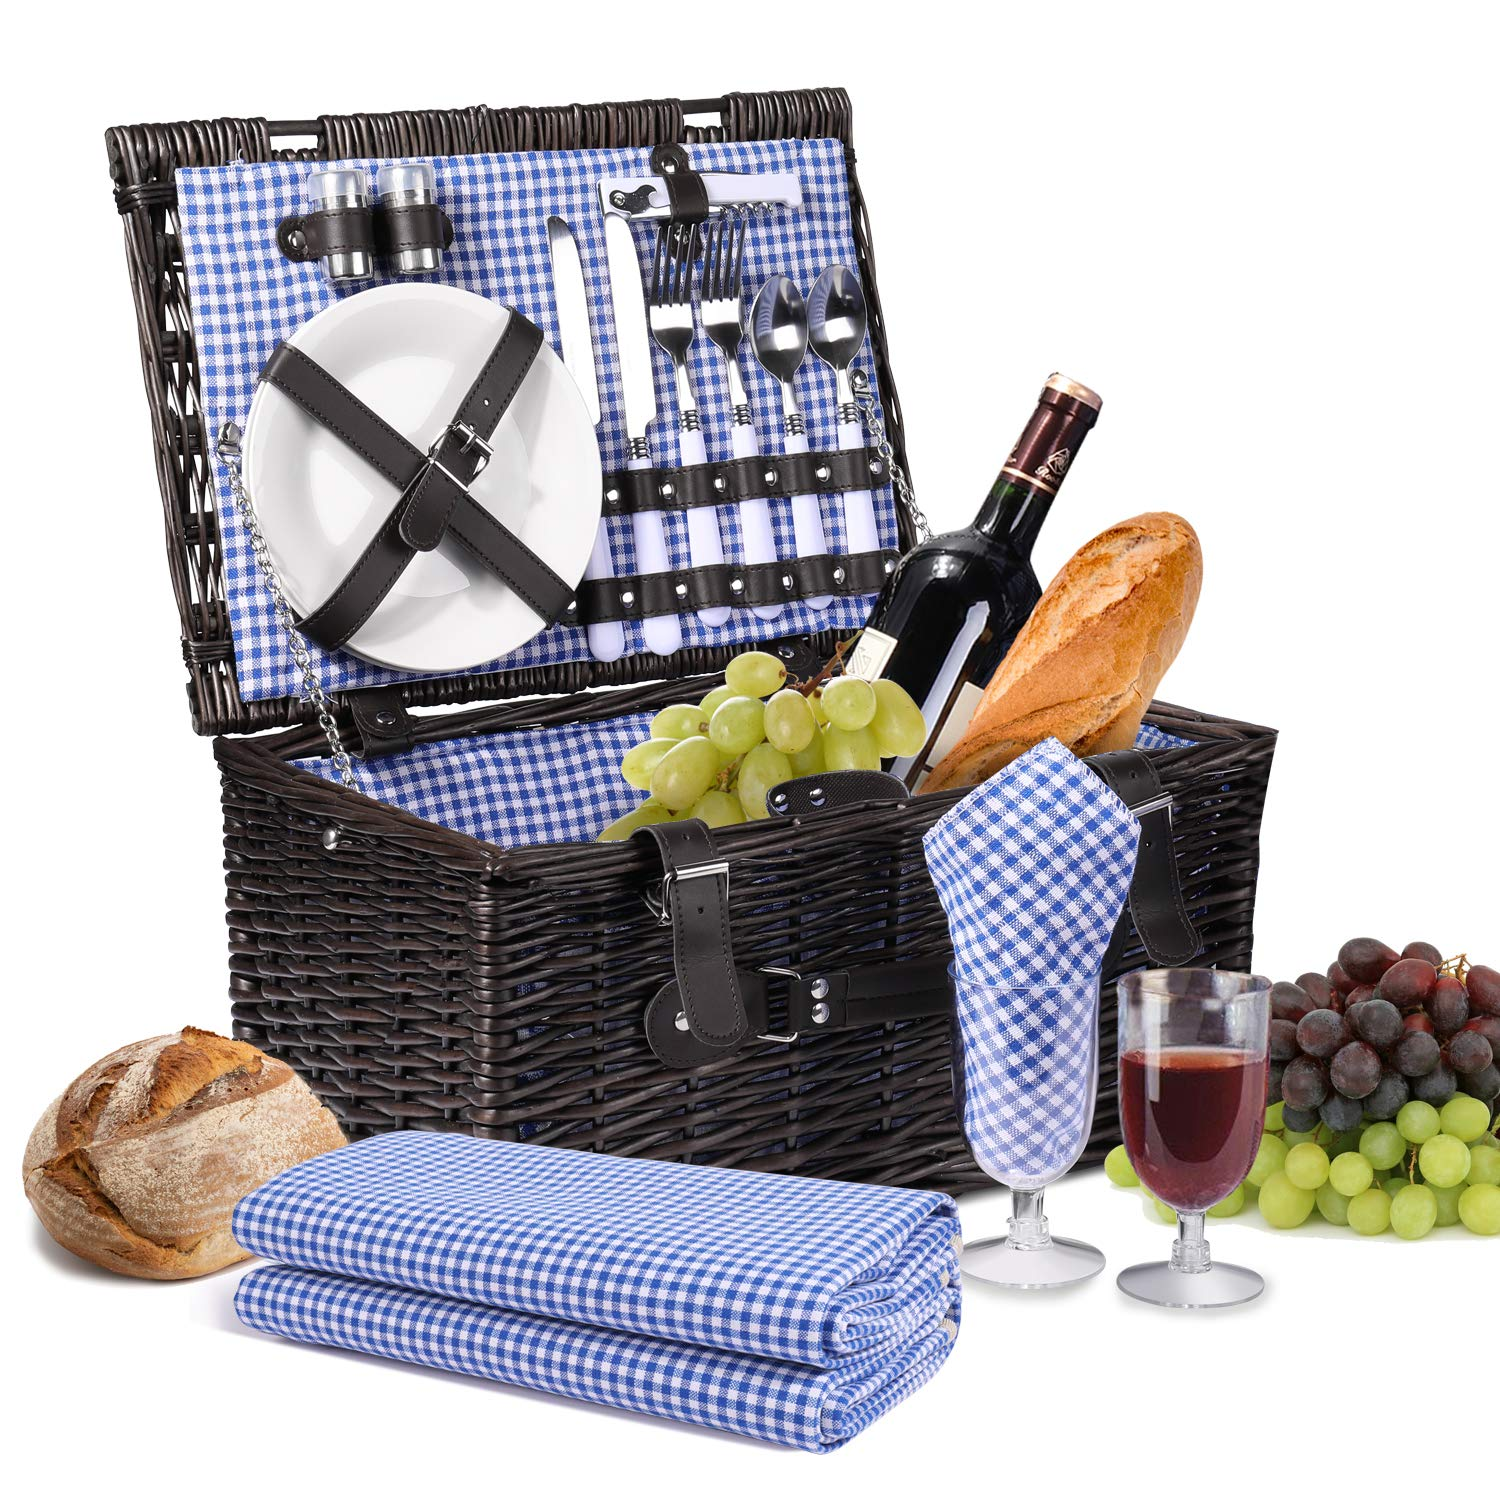 Flexzion Picnic Basket Set for 2 Person/Rectangular Tote Hamper Kit - Insulated Waterproof Wicker Picnic Blanket w/Plate Metal Flatware Table Supplies Wine Glasses Bottle Opener Blue Gingham Lining by Flexzion